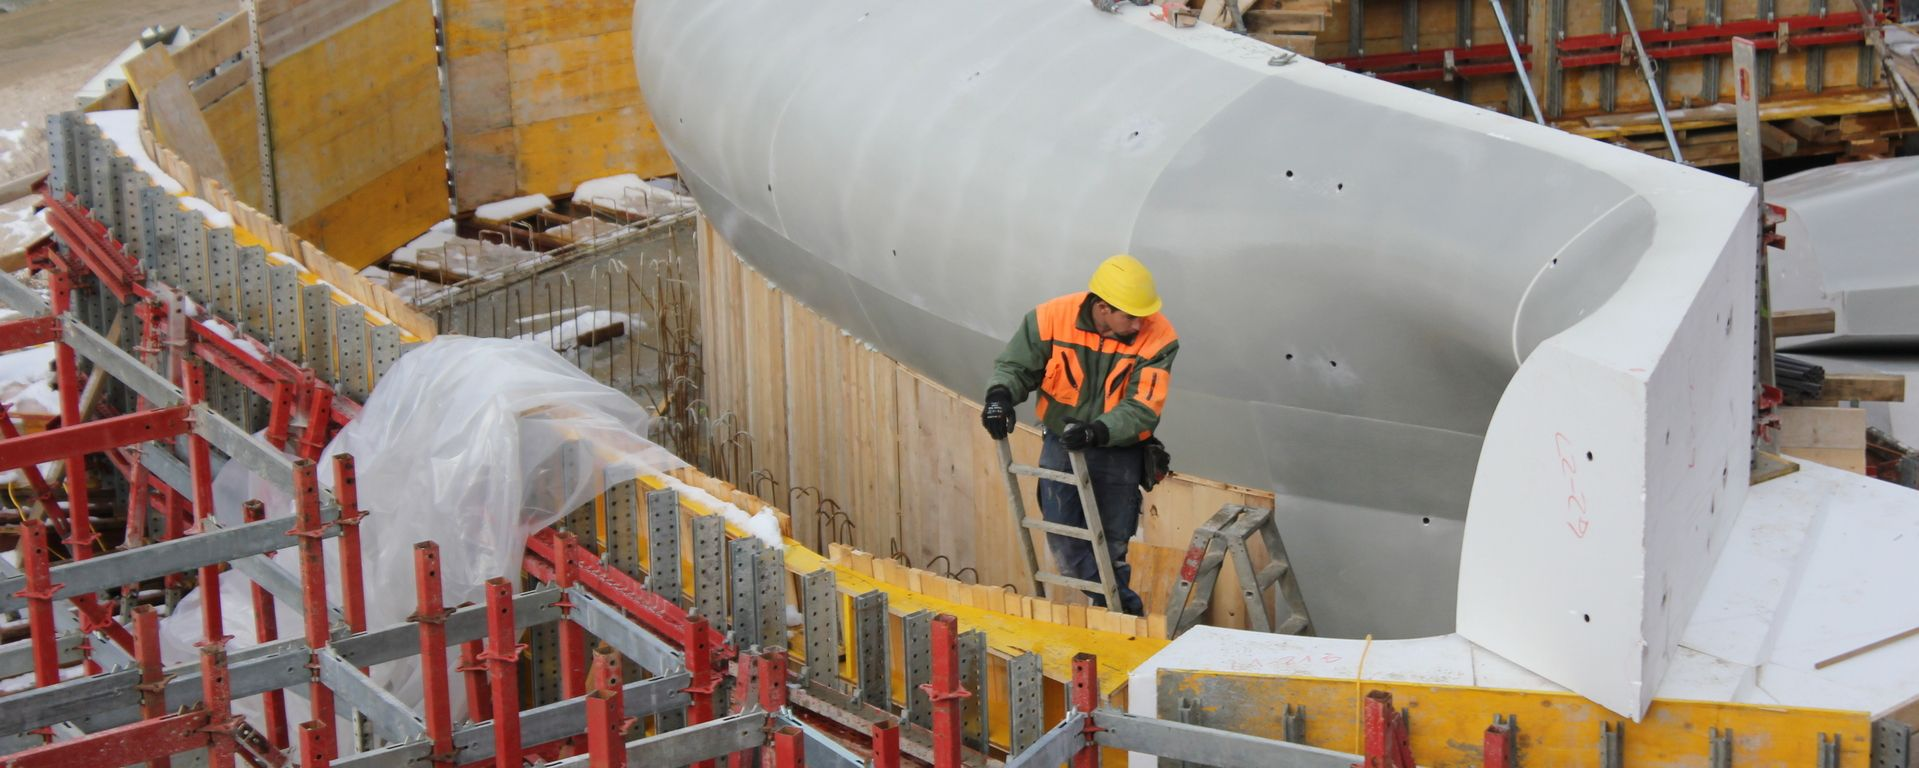 The Pros and Cons of Formwork in Concrete Construction